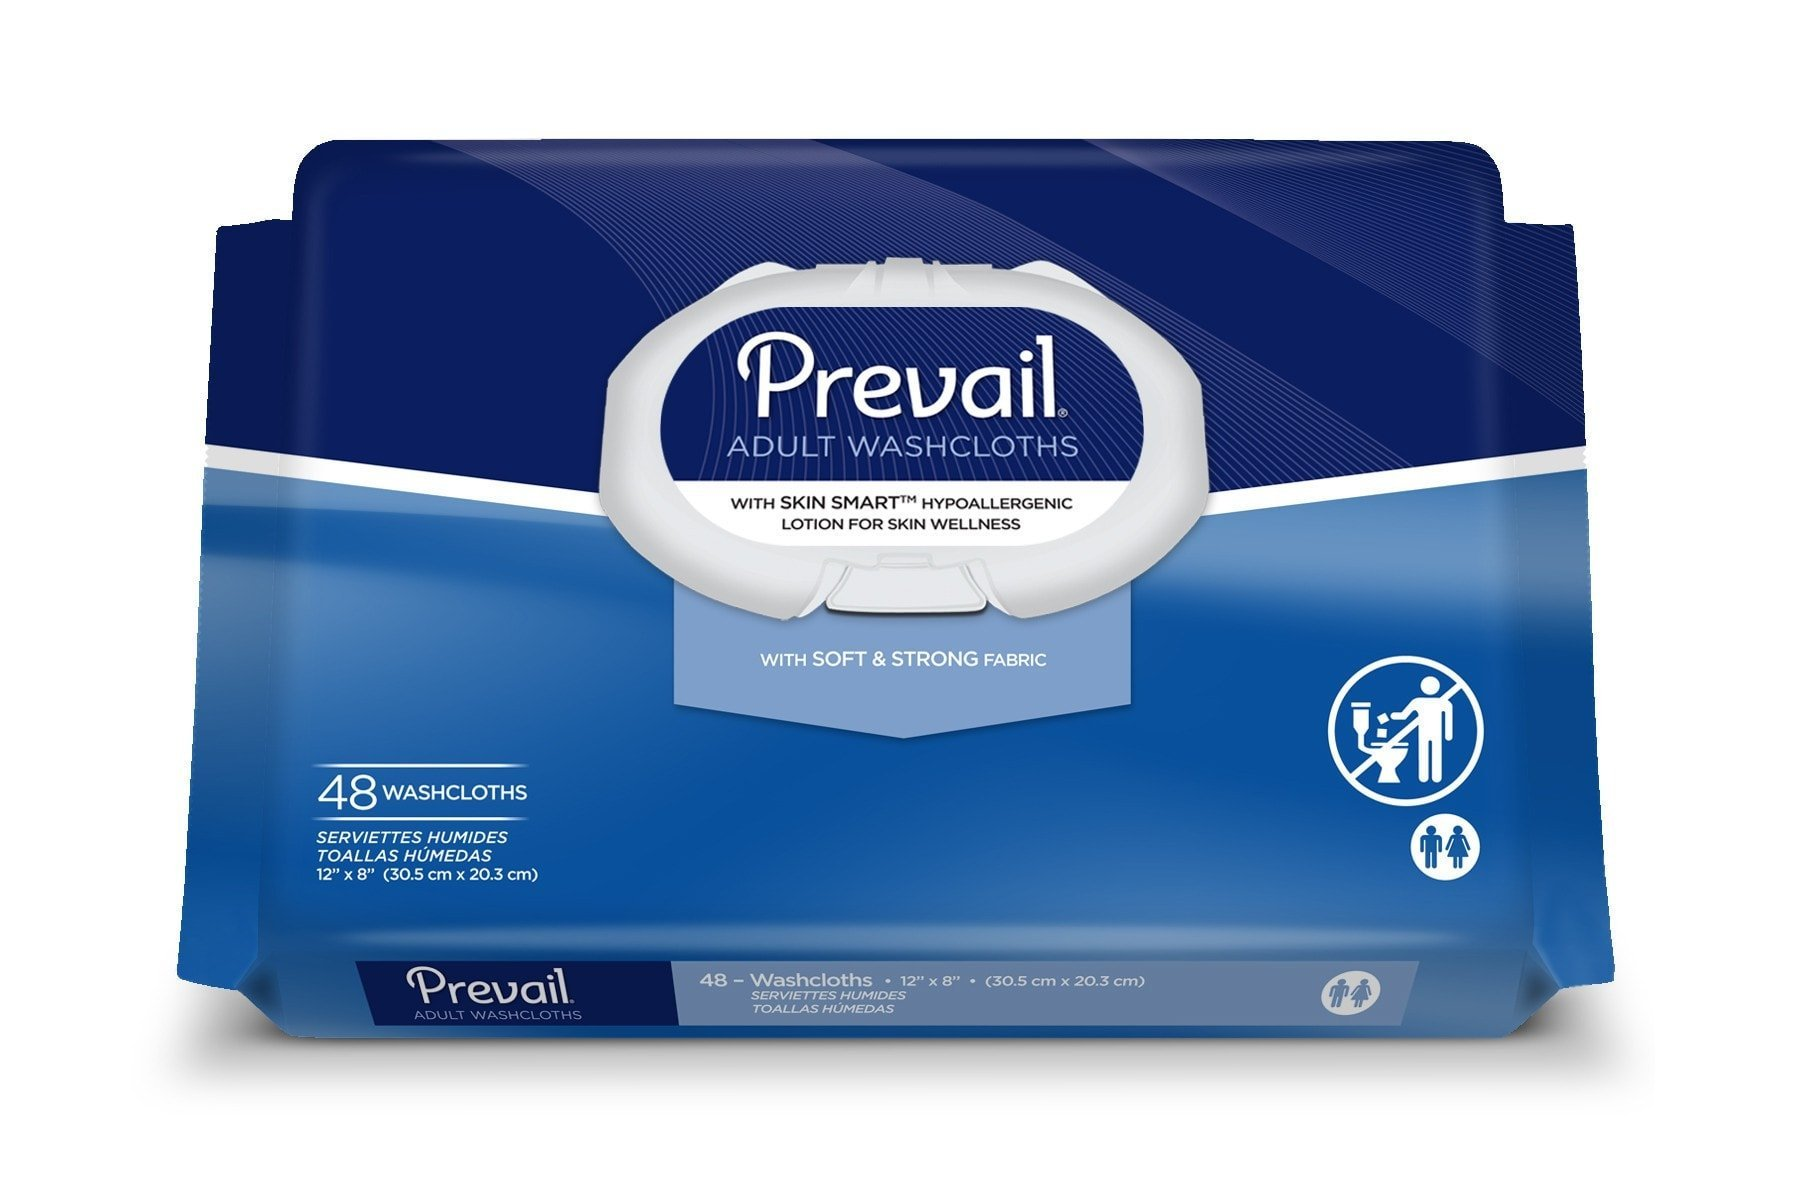 Prevail Adult Washcloths Soft Pack, 48 Count Pack product image